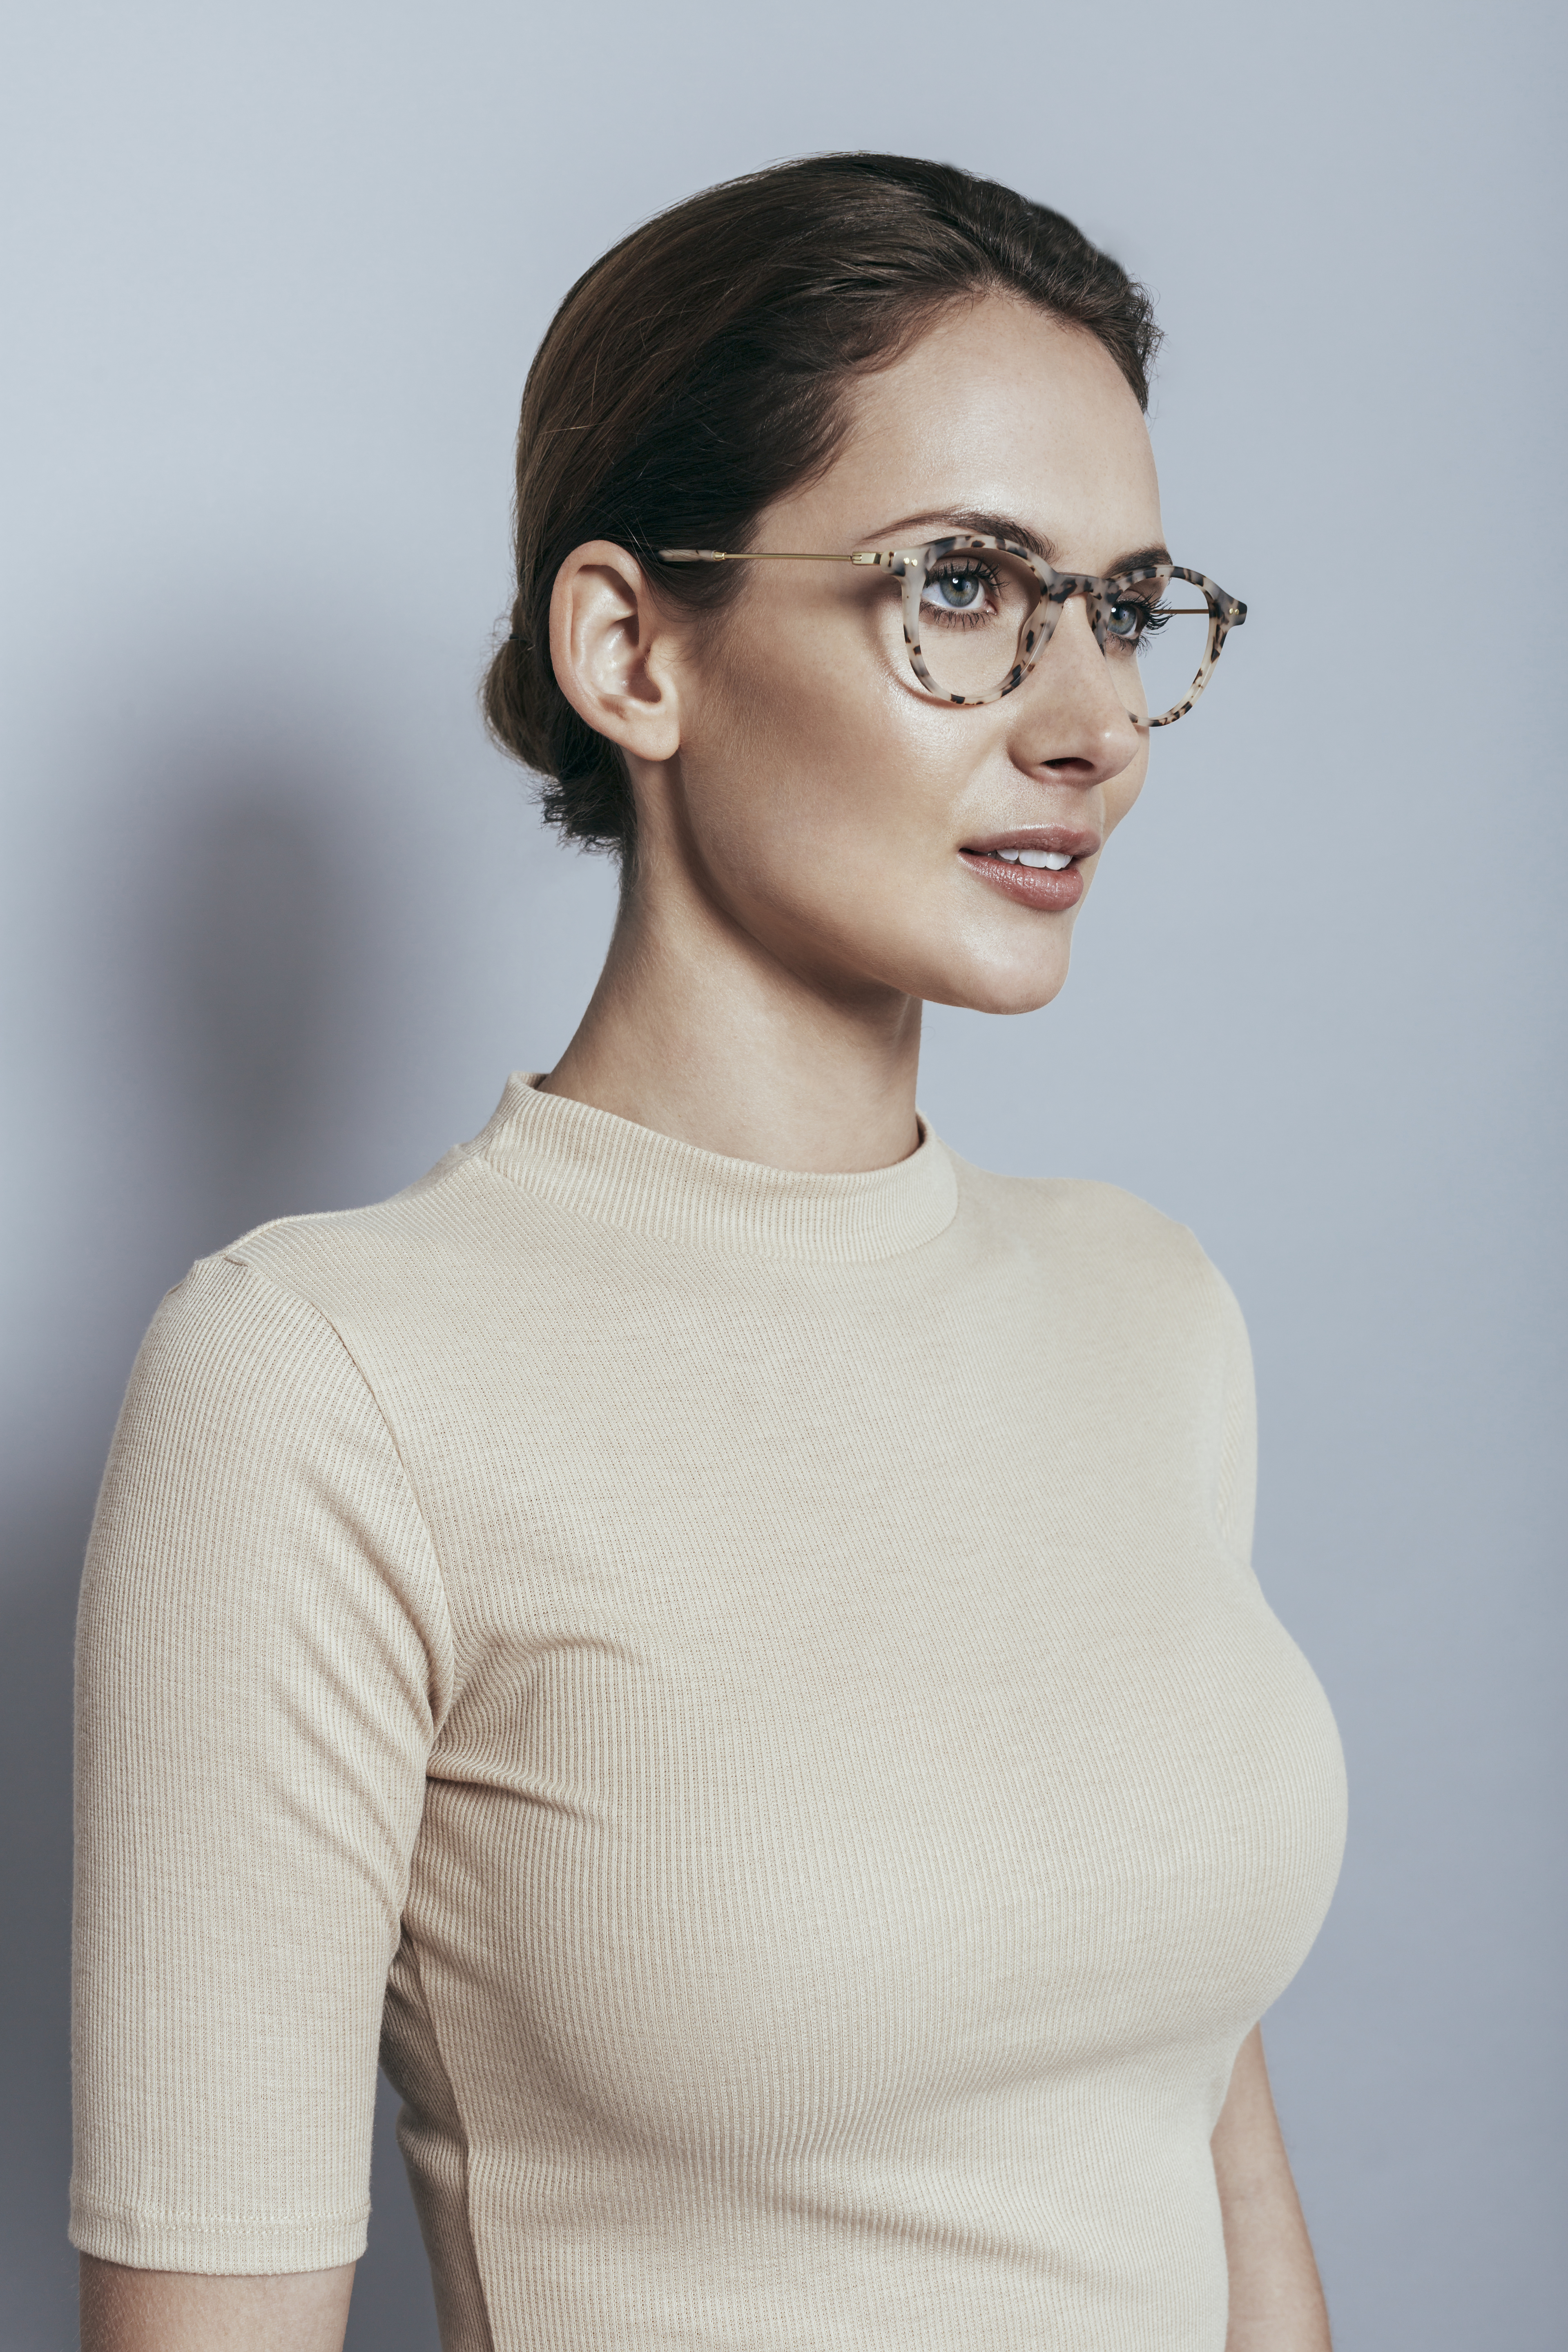 Just frames for glasses - Check Out Some Of Our Favorite Style And Color Combinations Below